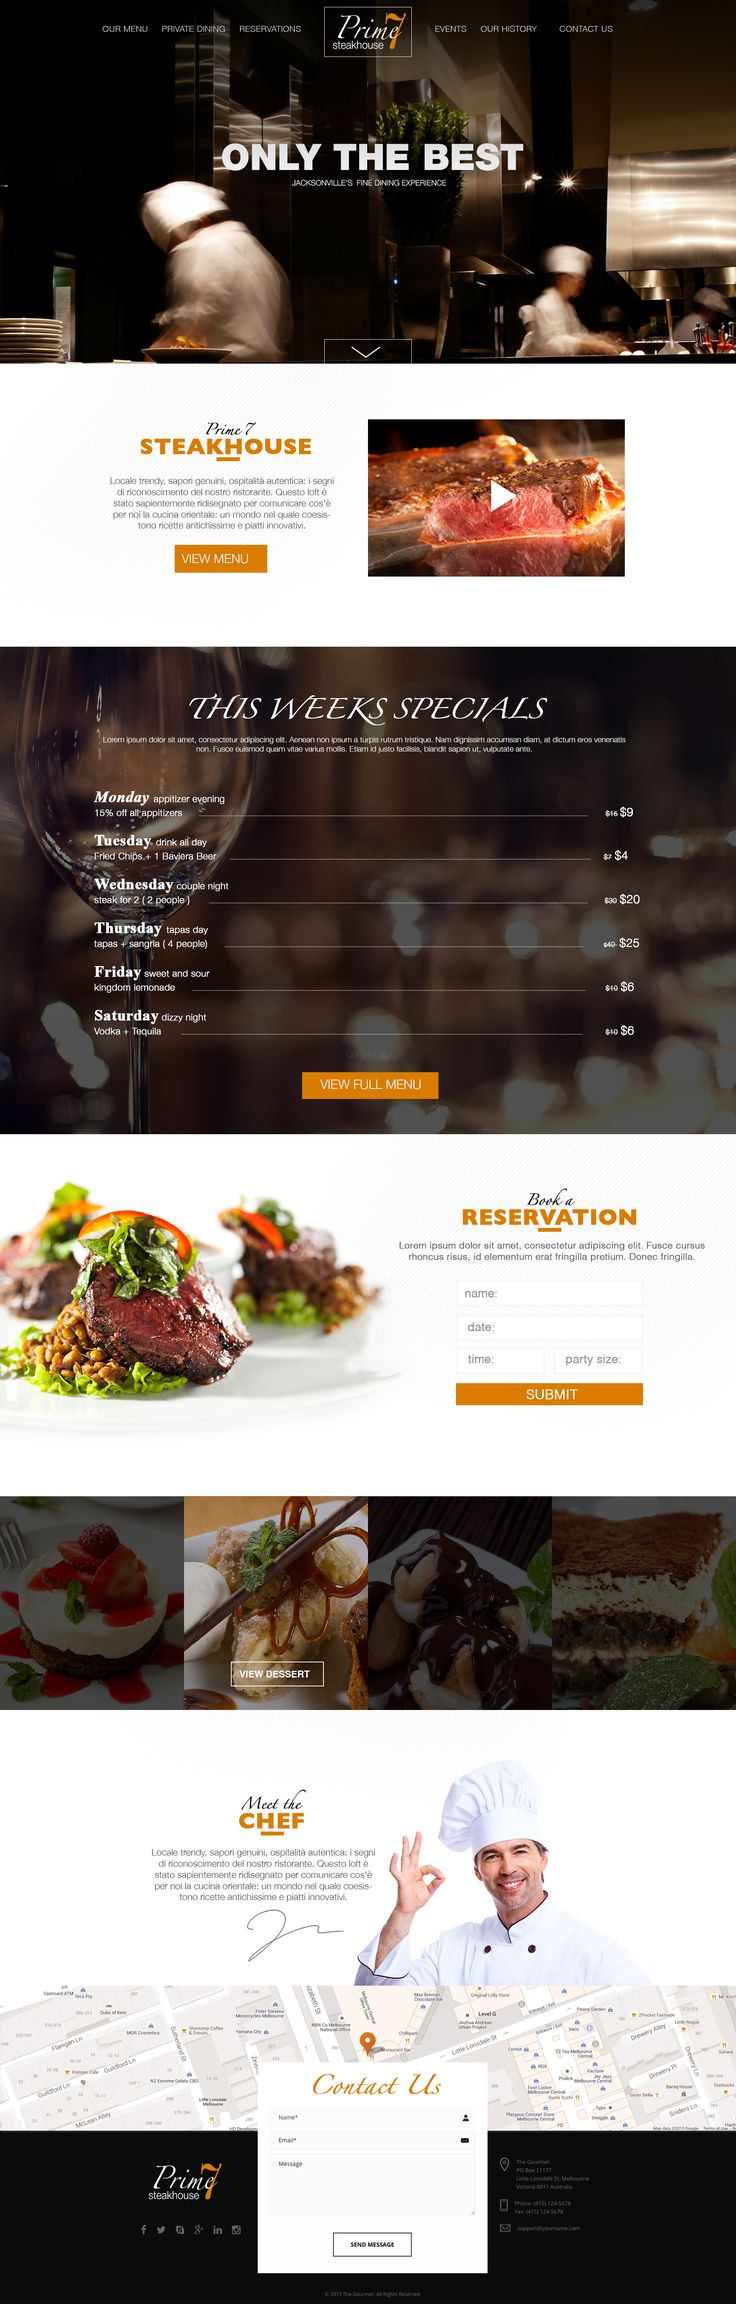 Design Concept for restaurant website design.